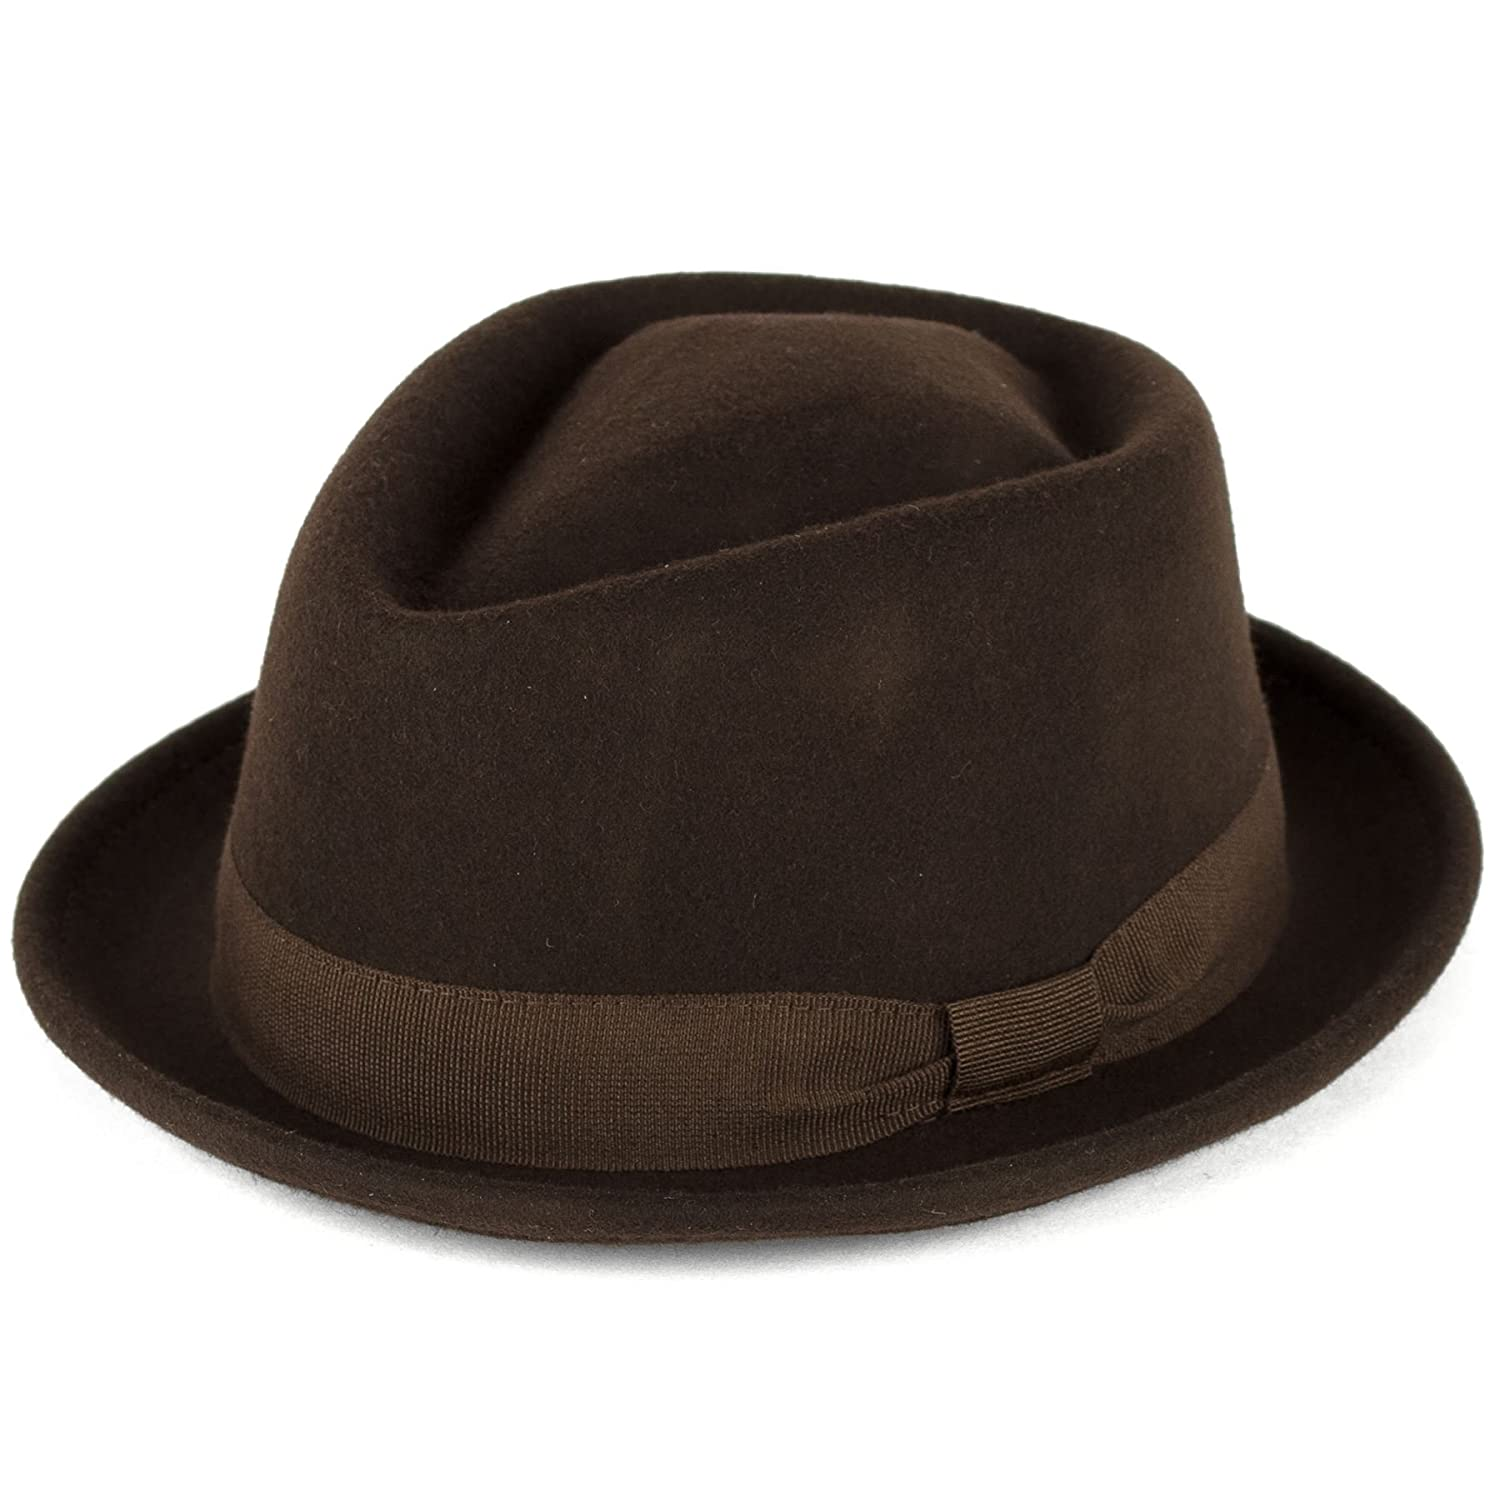 a07353a36c3 Amazon.com  Wool Diamond Shaped Pork Pie Hat Waterproof   Crushable  Handmade in Italy  Clothing